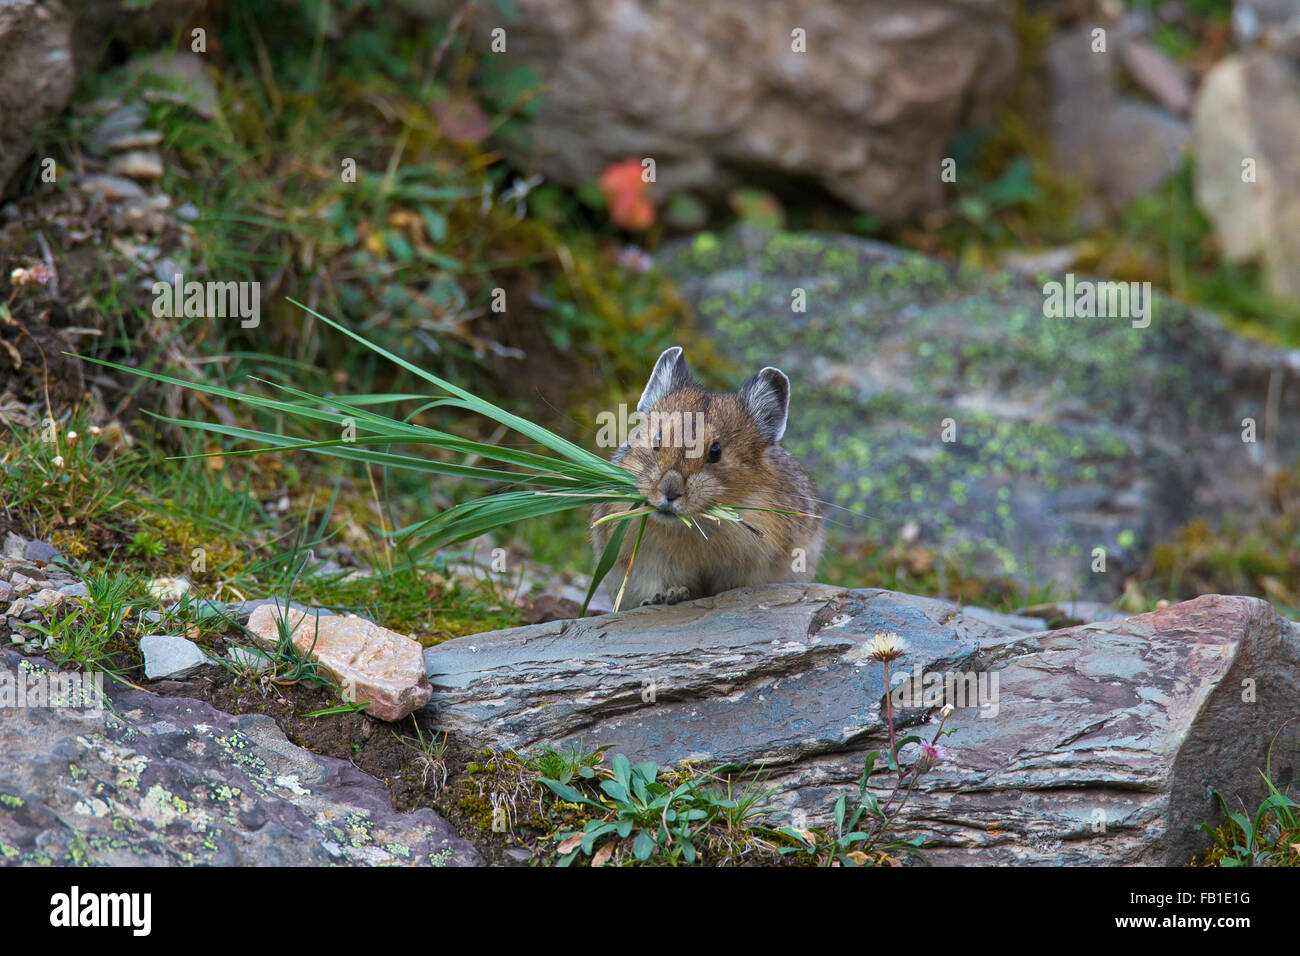 American pika (Ochotona princeps) native to alpine regions of Canada and western US, with a mouthful of grass stalks - Stock Image